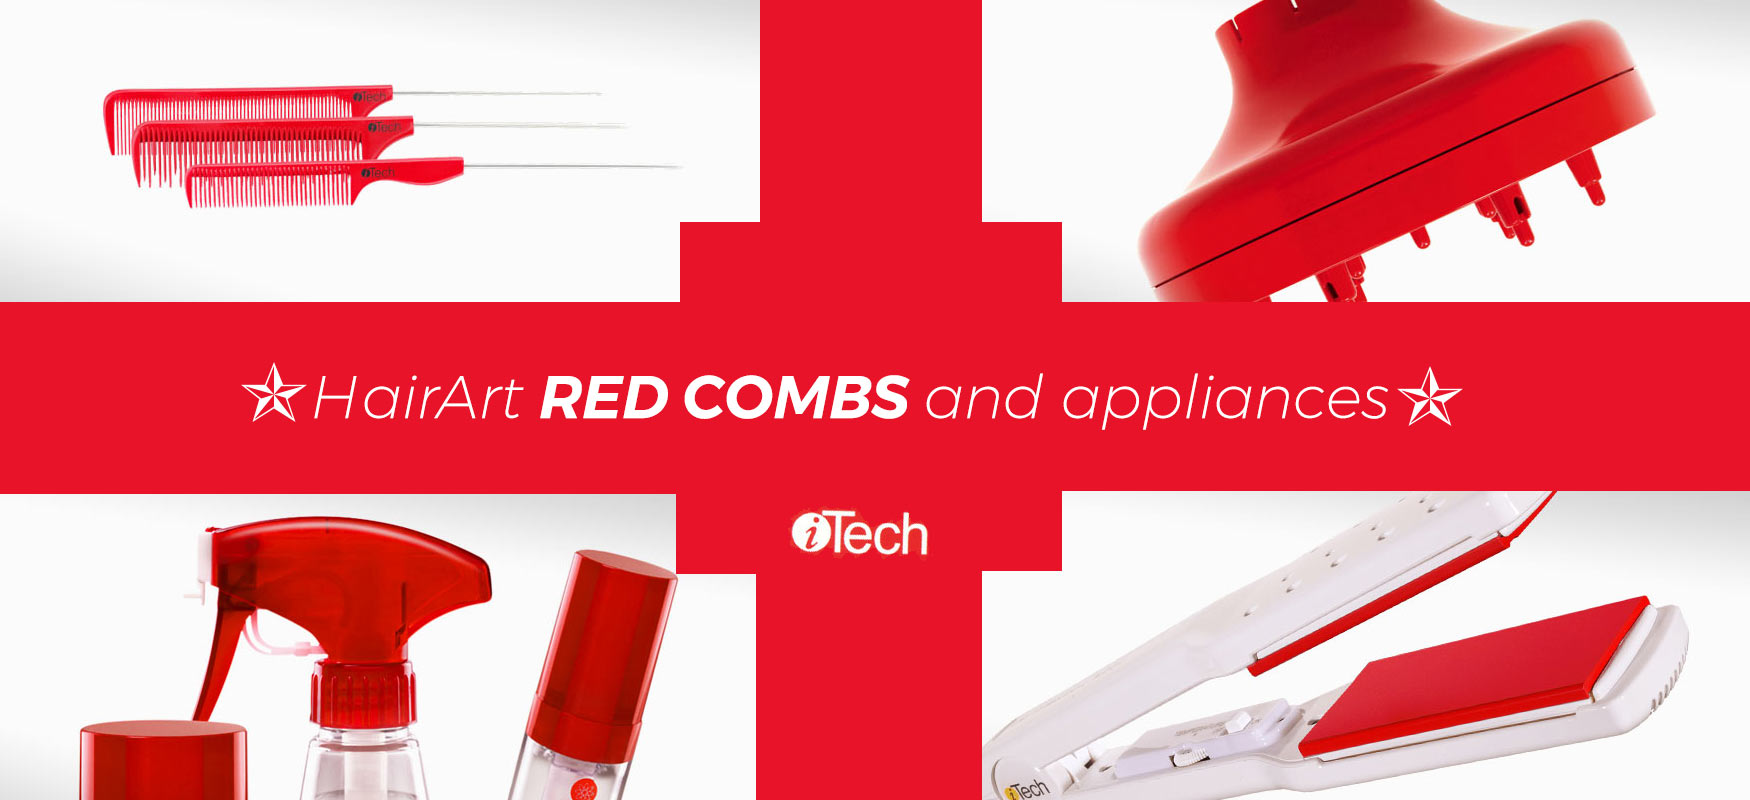 Red Combs and other iconic HairArt products